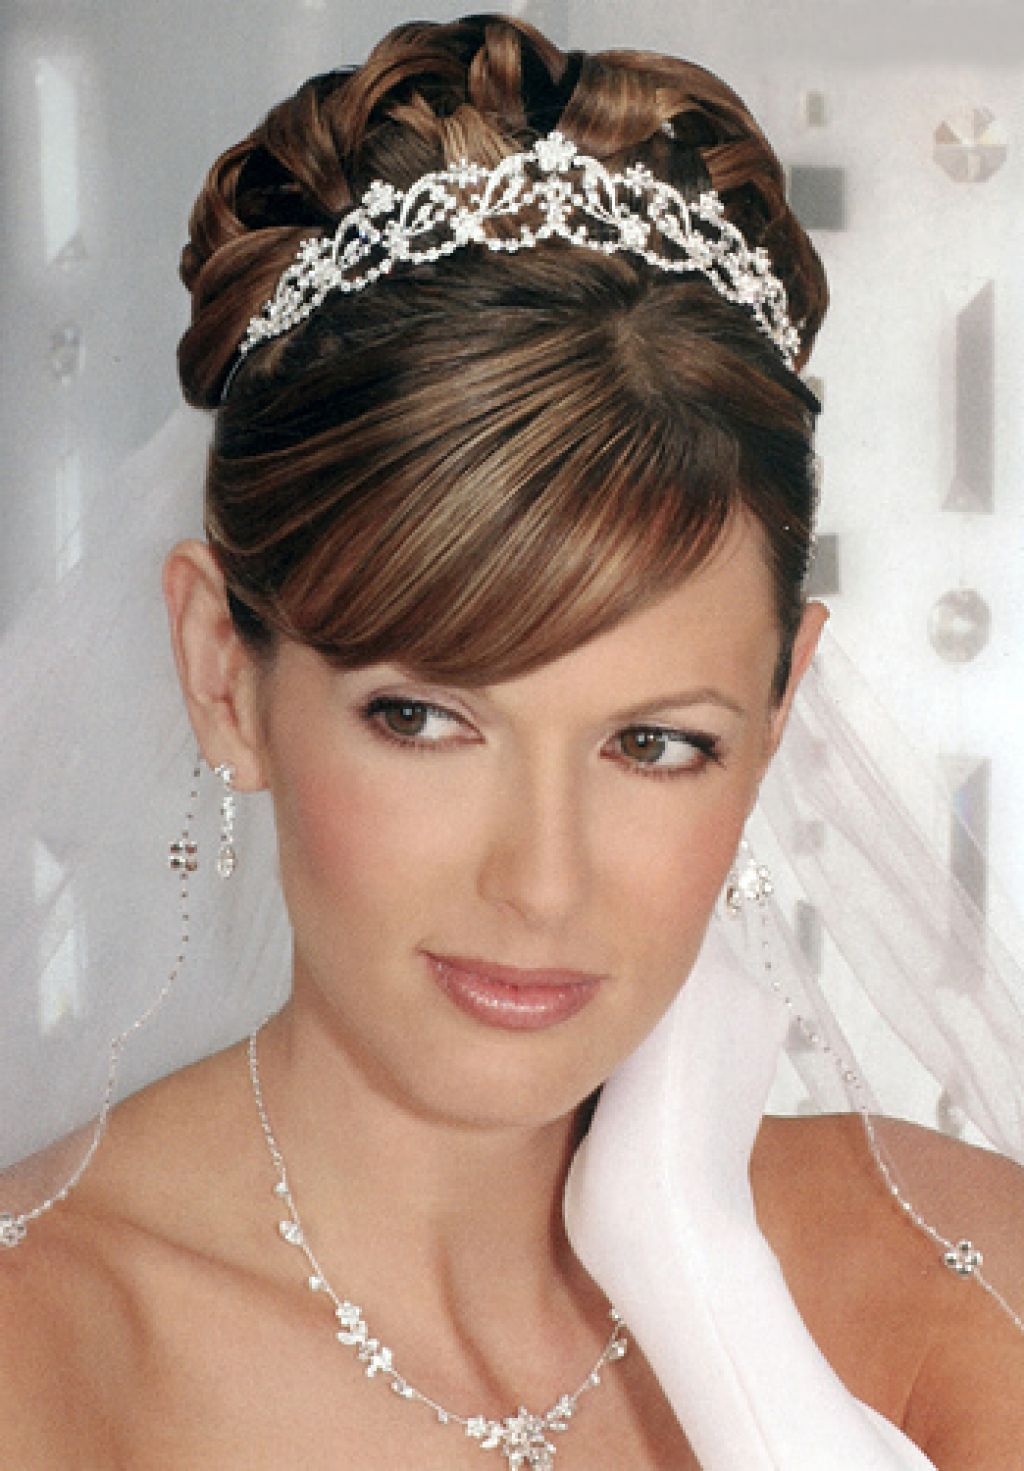 mother of the groom hairstyles 2015 | hairstyles | pinterest